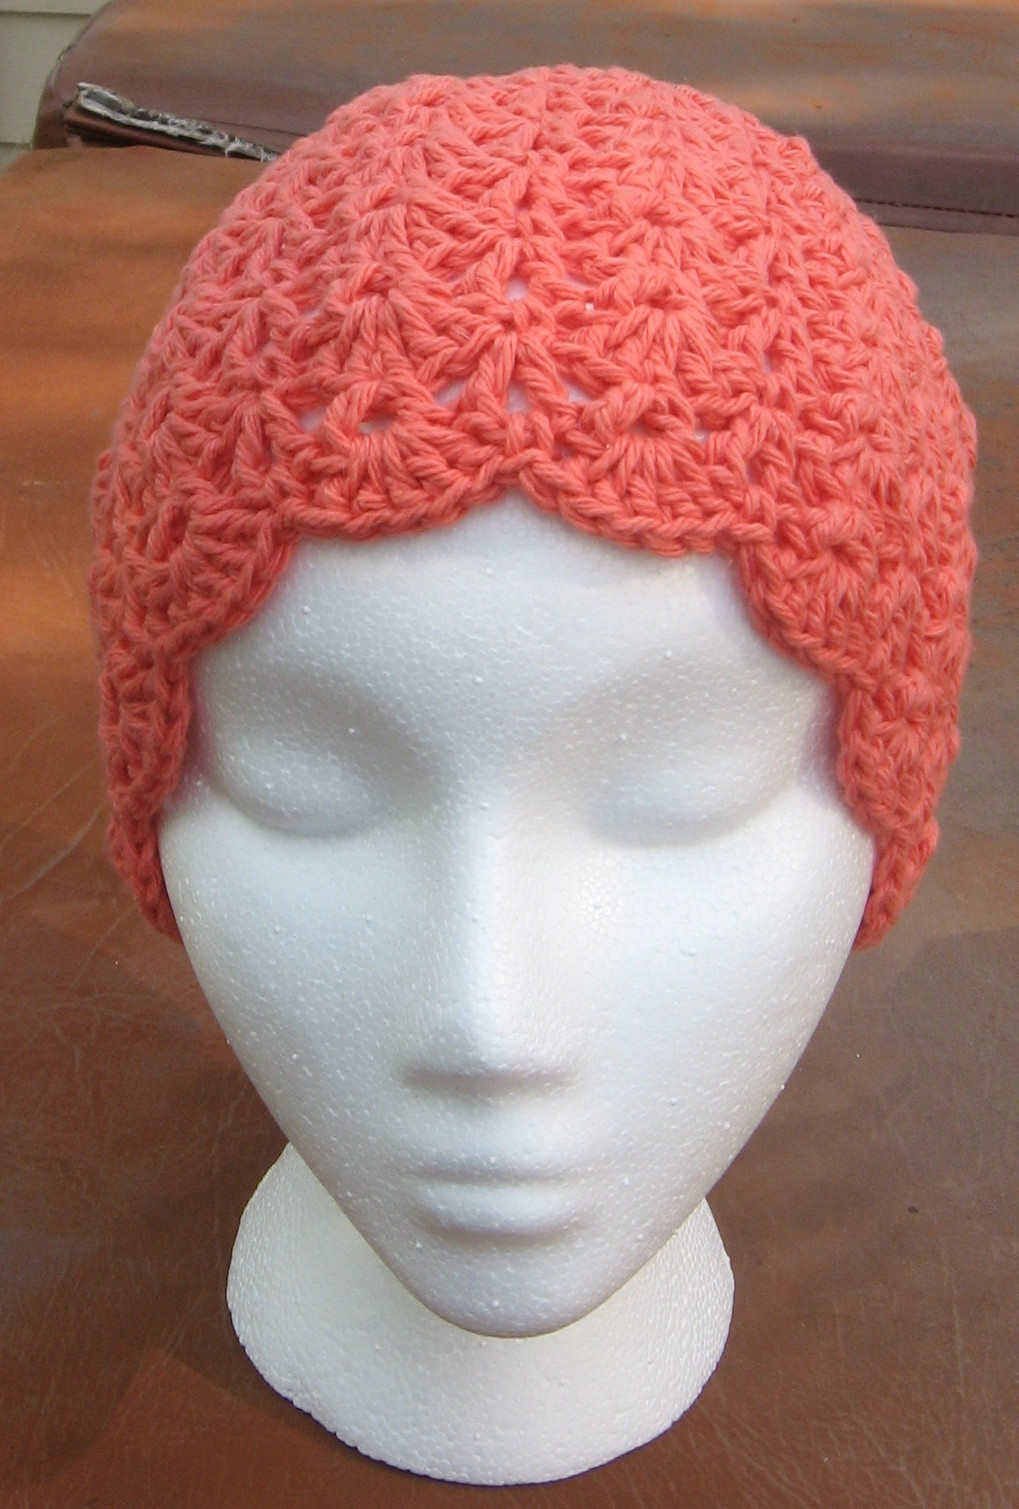 Crochet Projects Chemo Hats Set 1